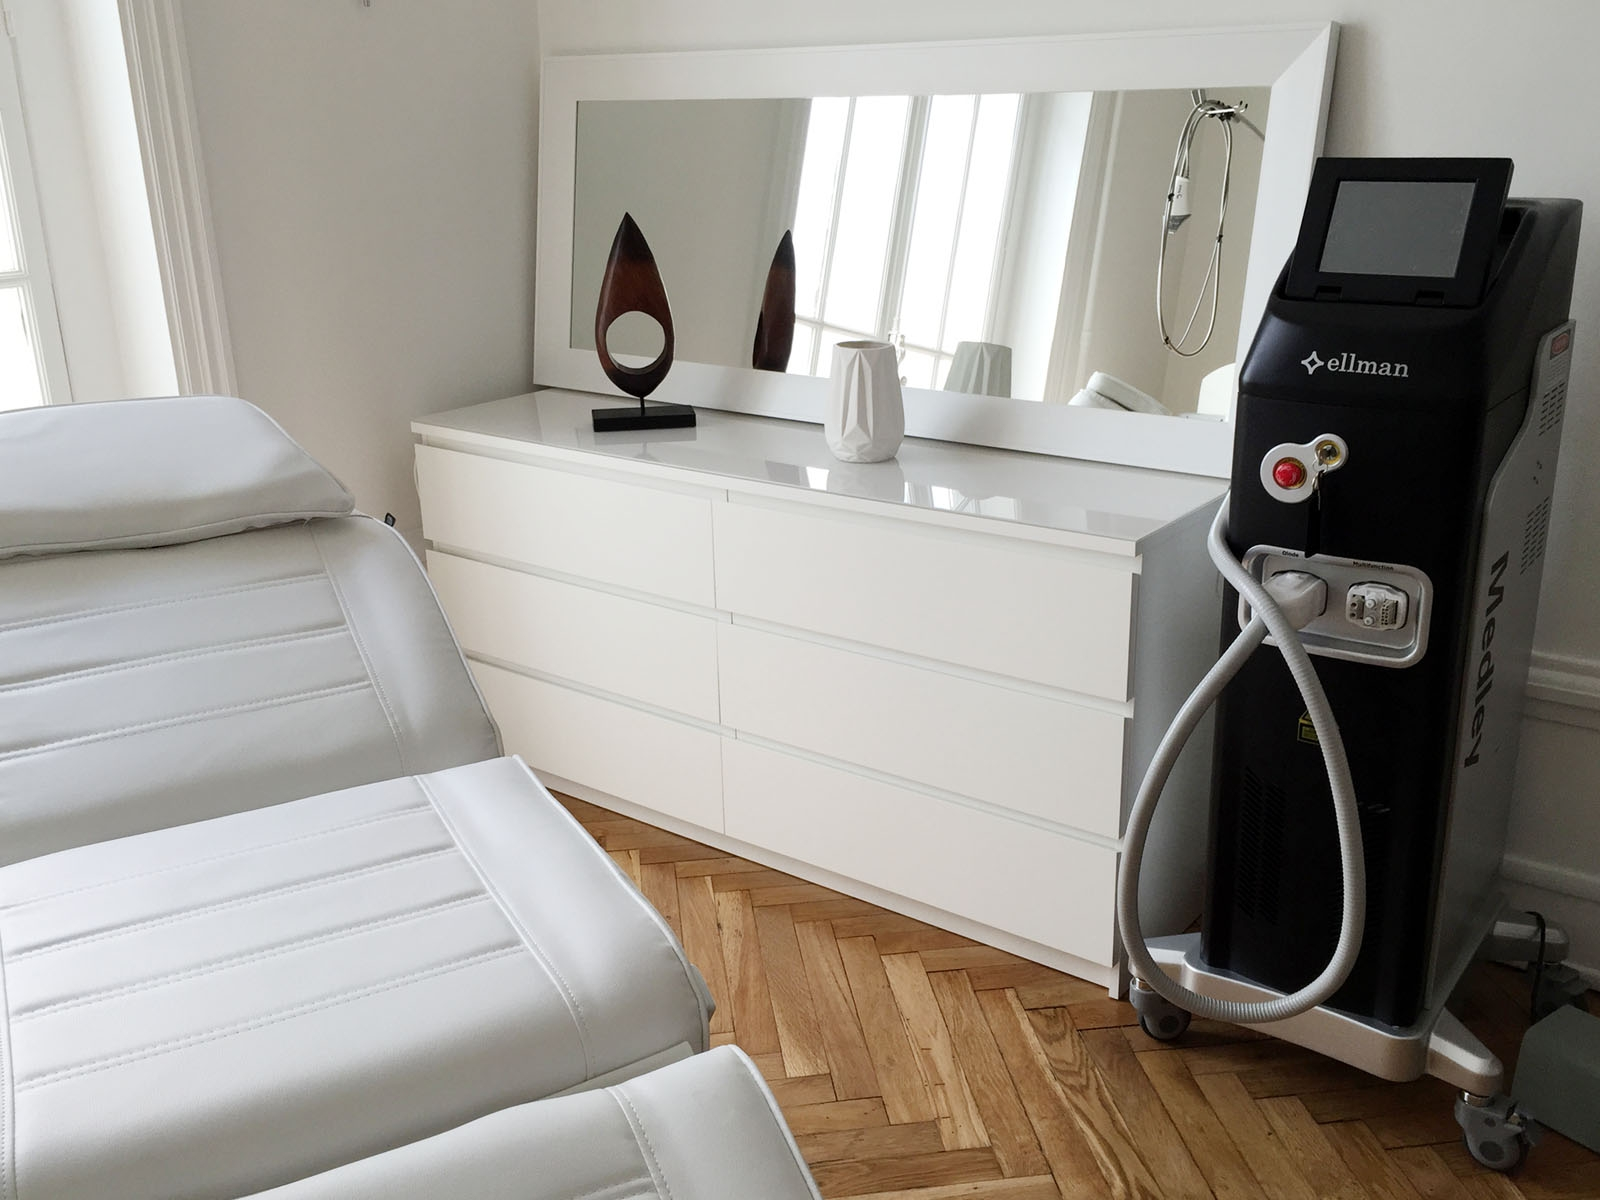 epilation laser lyon au centre neodermage. Black Bedroom Furniture Sets. Home Design Ideas